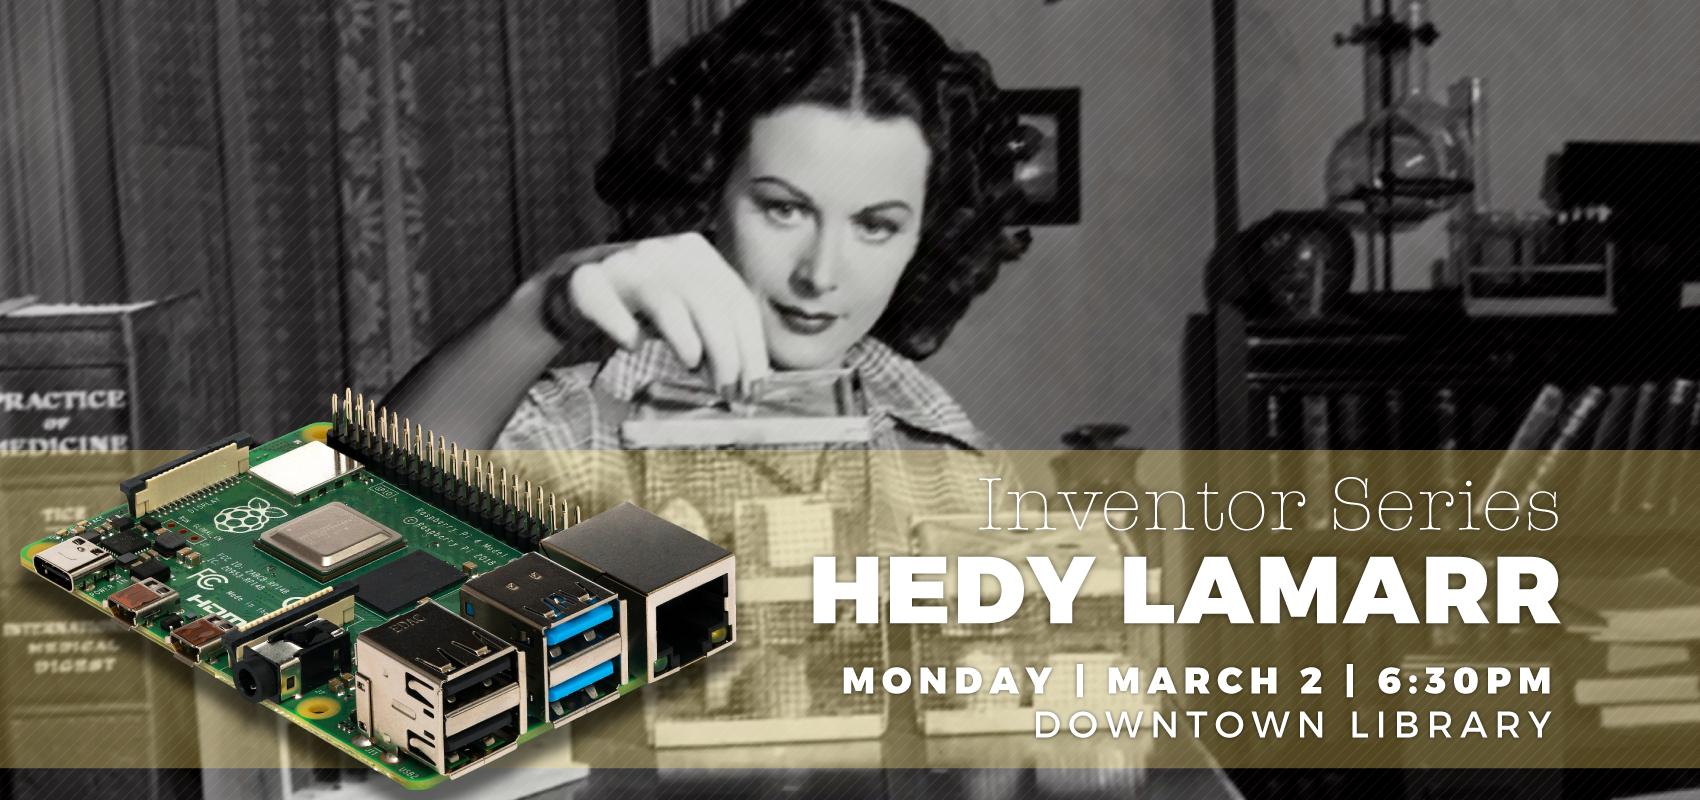 Inventor Series: Hedy Lamarr. .